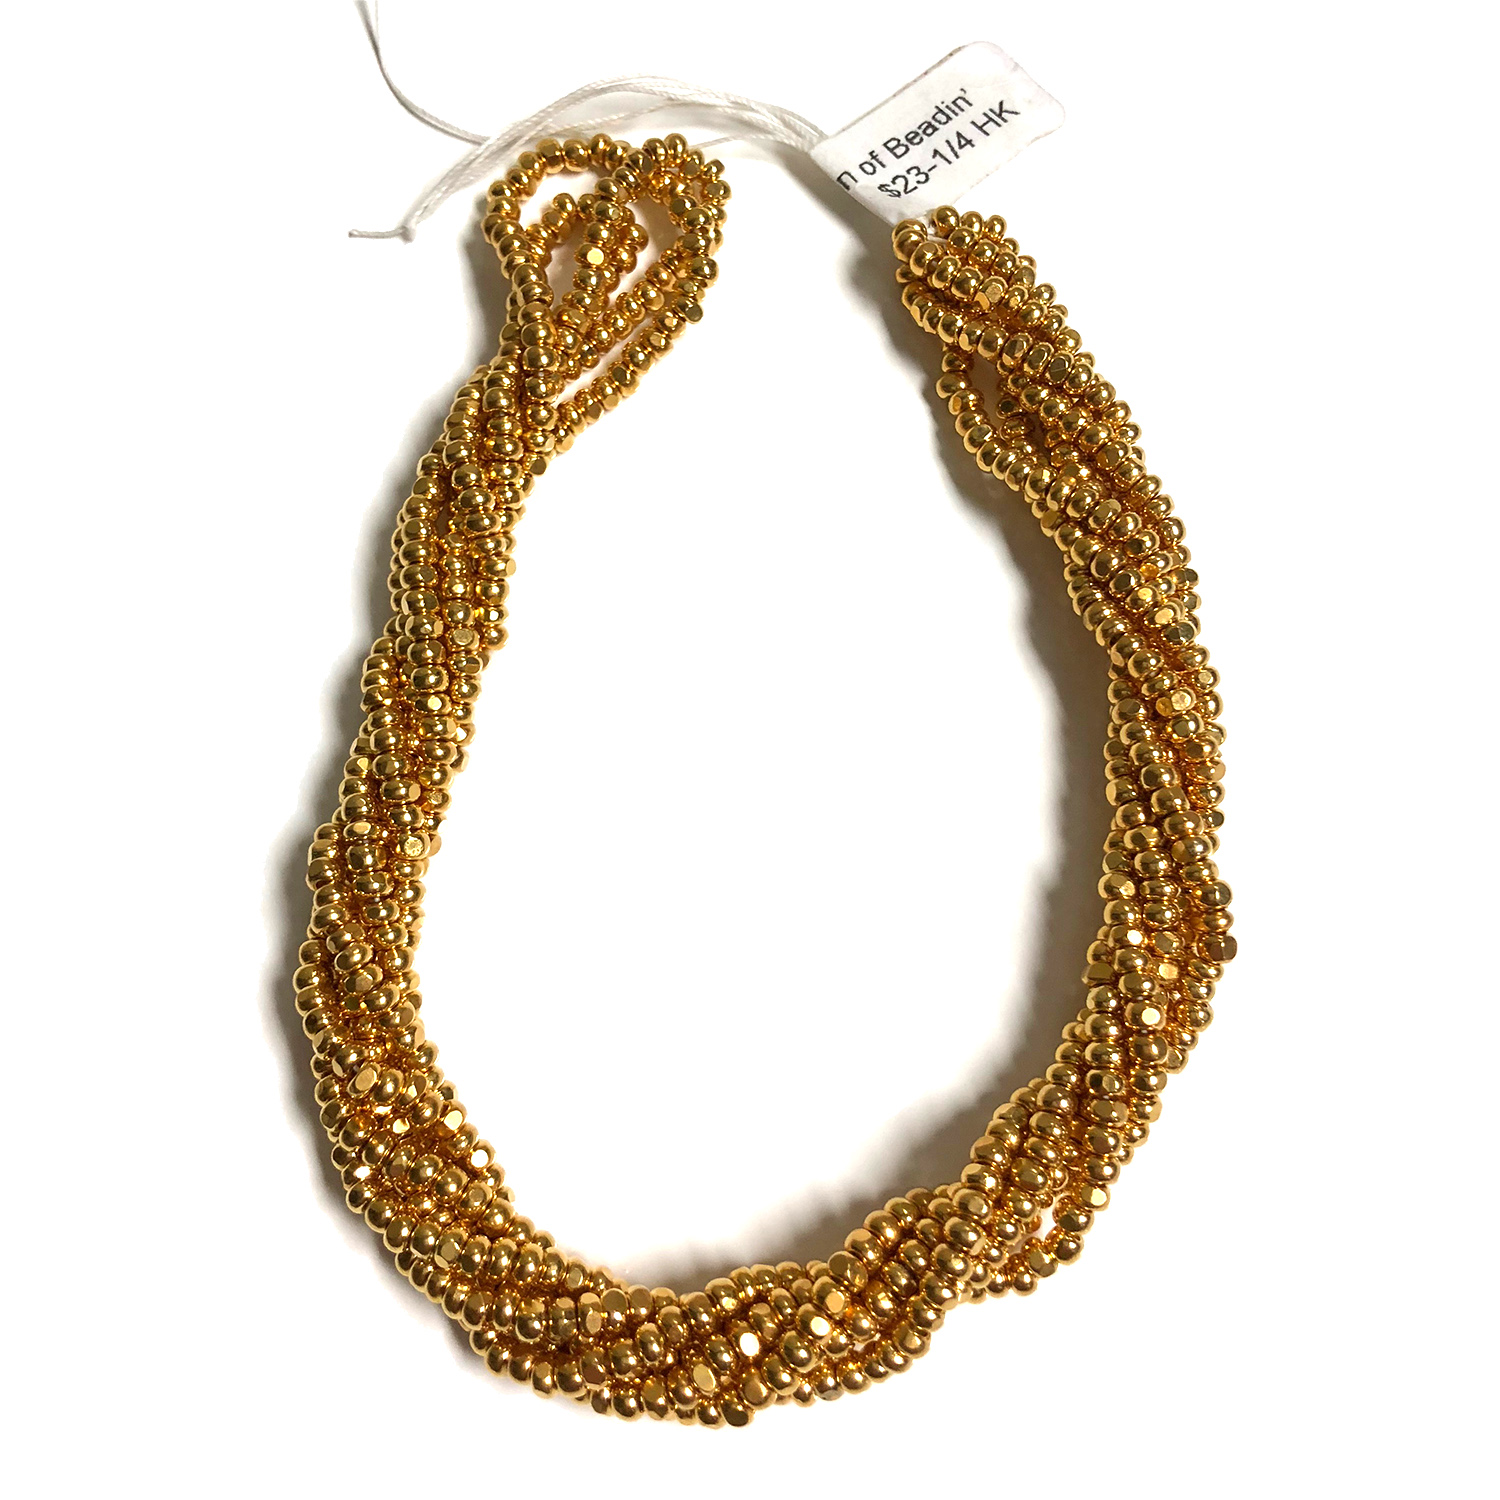 Size 8 Cut Seed, Gold Plated 22K 3 Strands